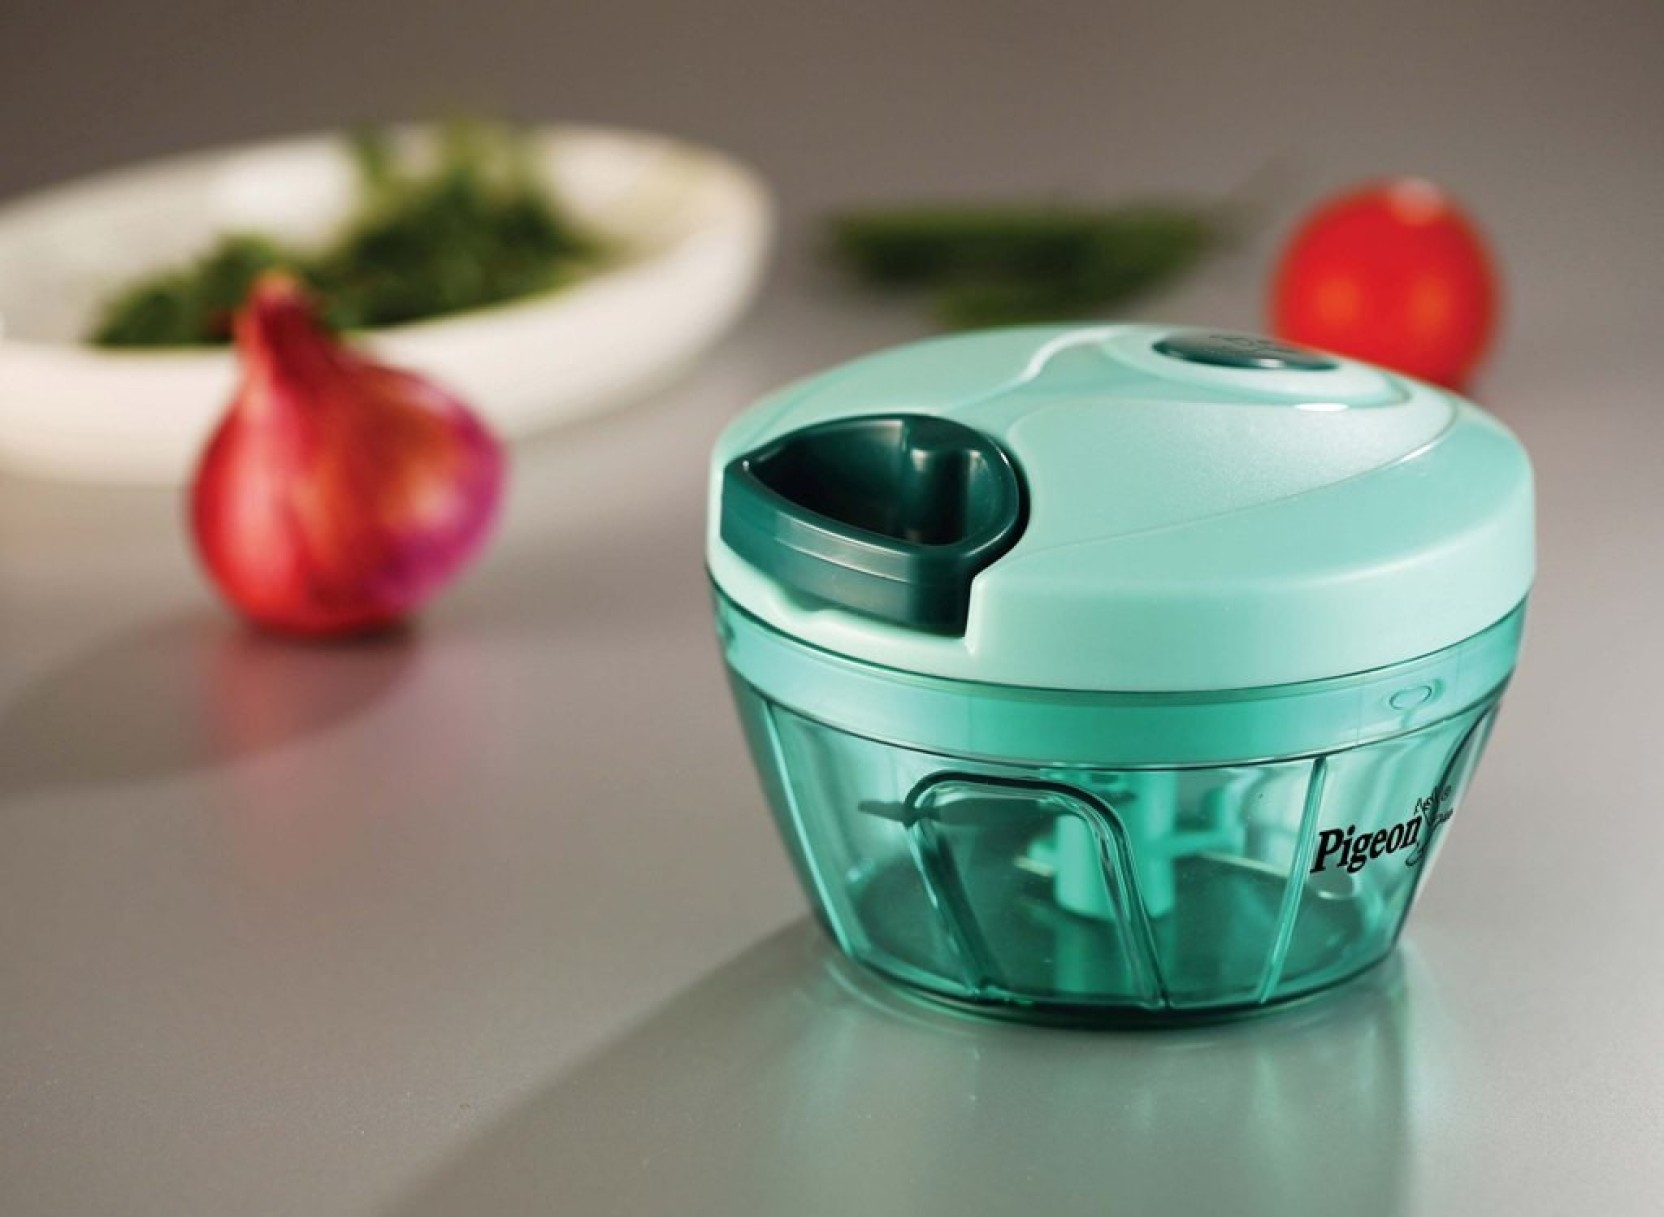 Pigeon Handy Mini Chopper Price in India - Buy Pigeon Handy Mini ...